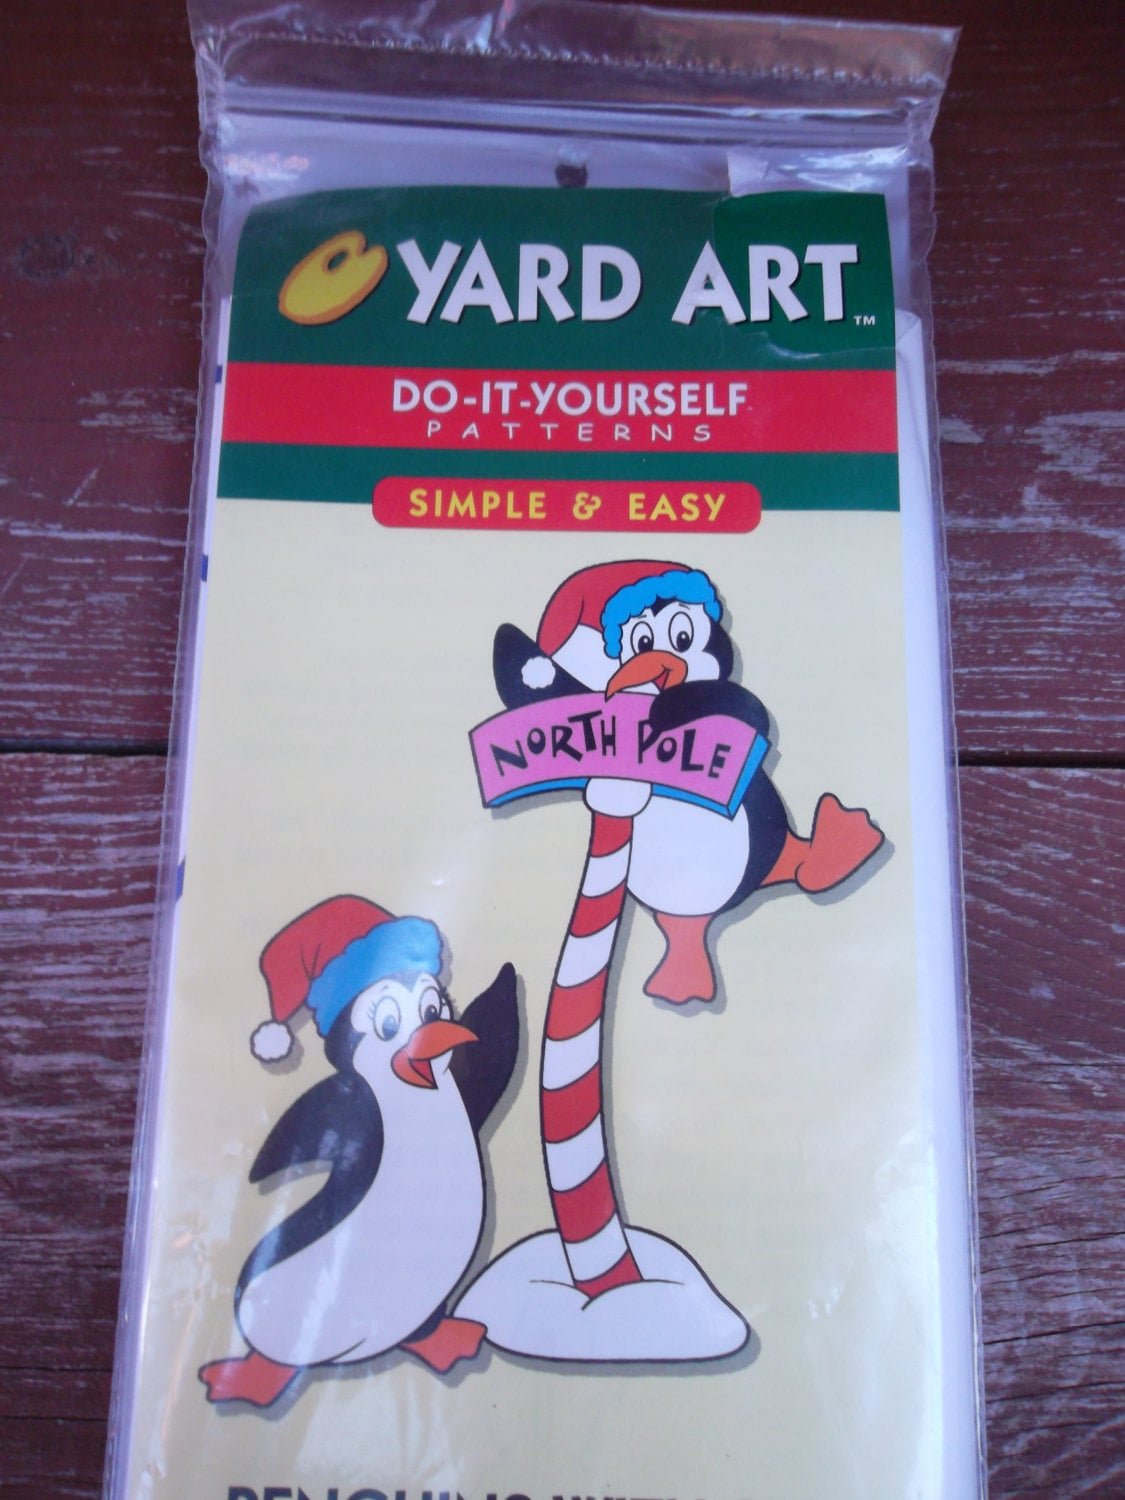 Yard art do it yourself patterns penguins with sign outdoor yard 695 solutioingenieria Images